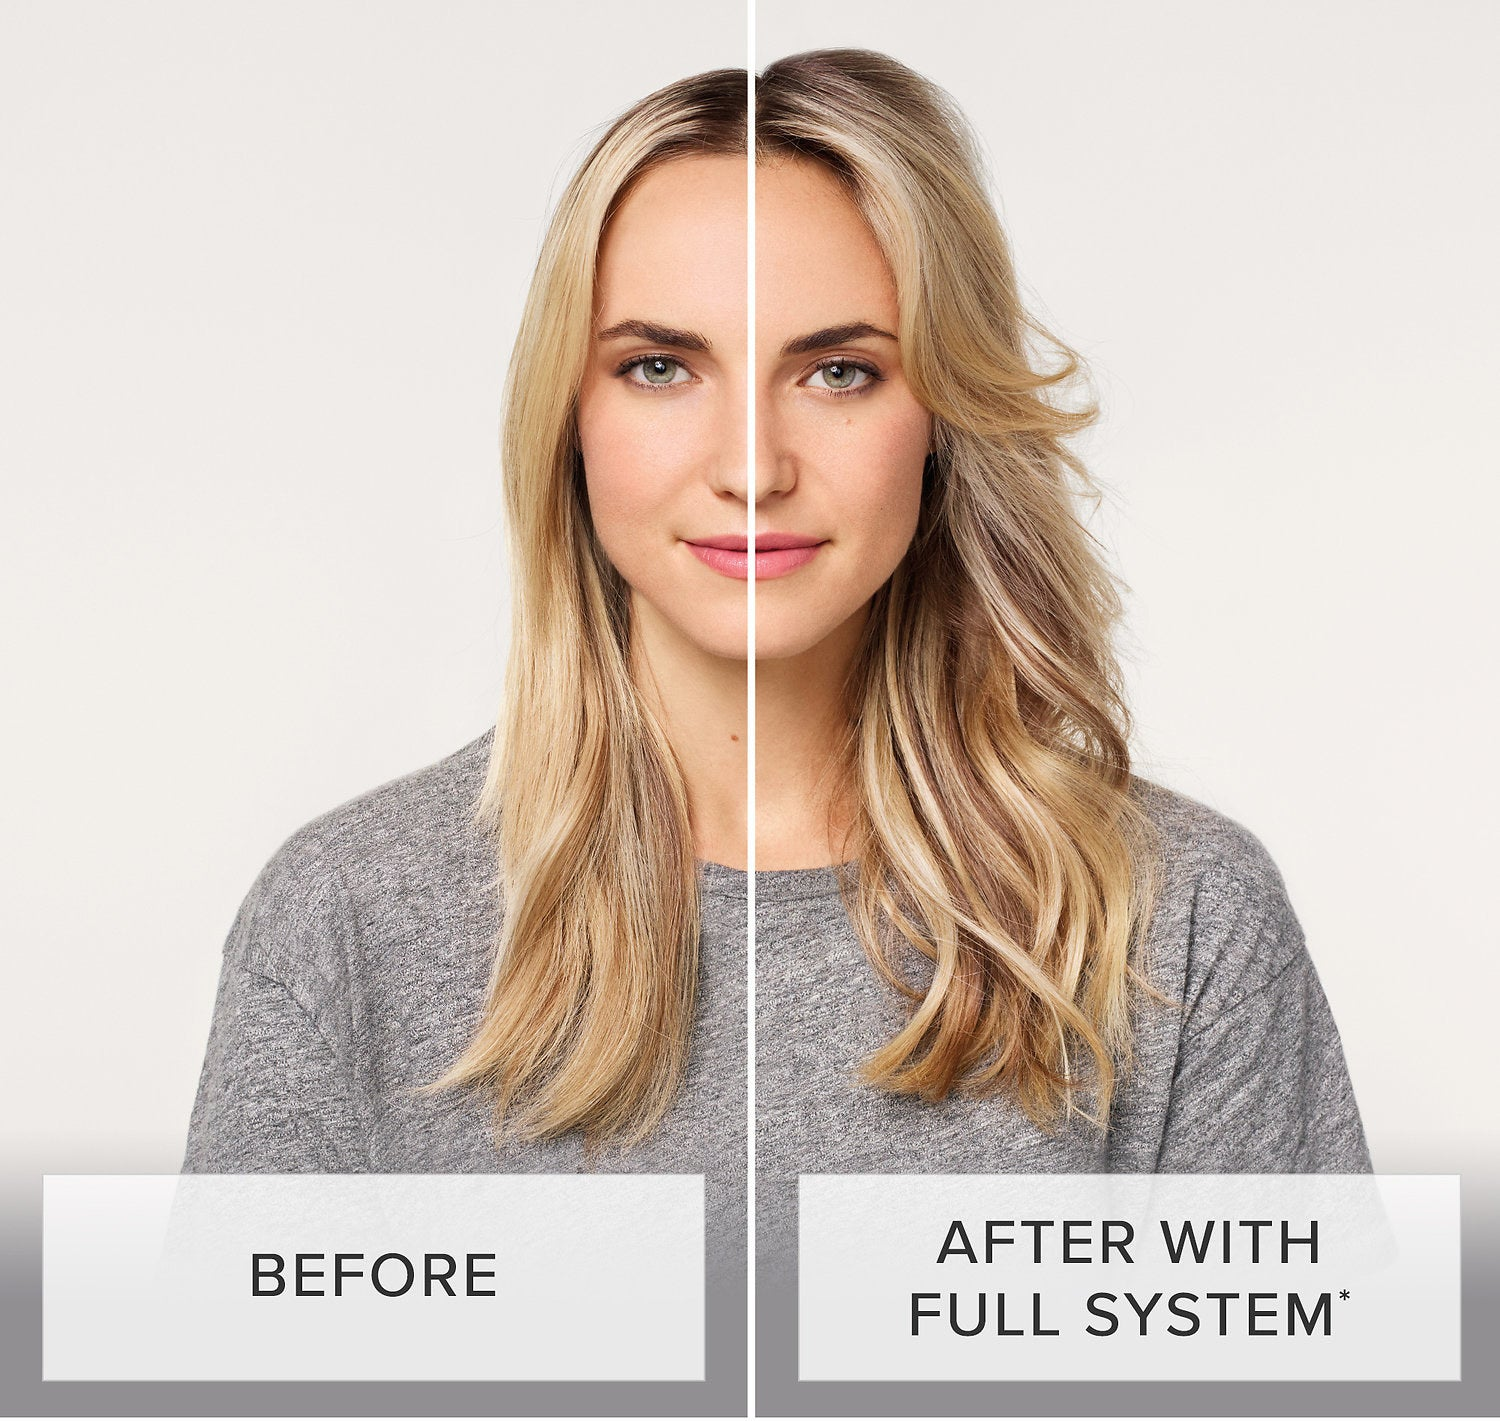 Before photo of model with dry, flat, lifeless hair and an after photo of the same model with fuller, brighter hair